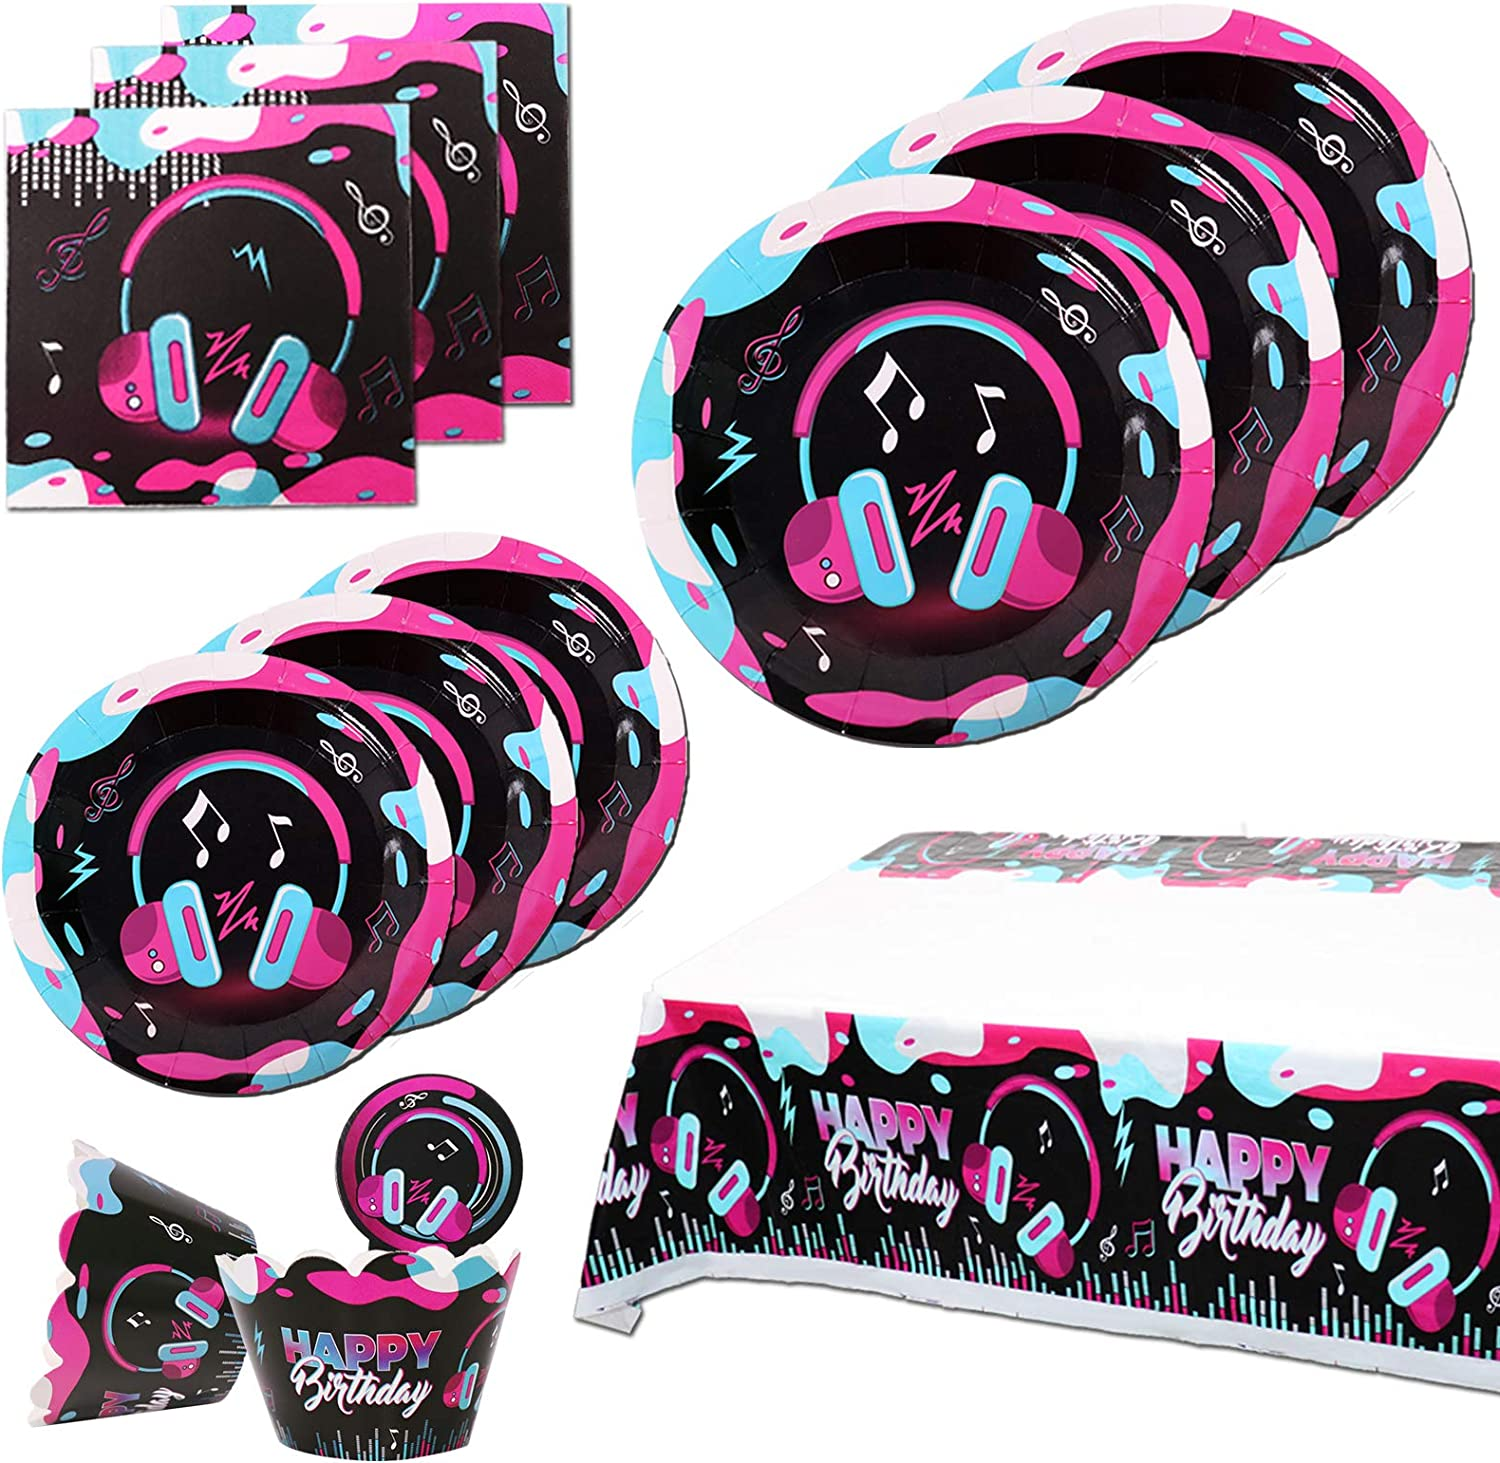 TIK Tok Party Decorations for Girls,TIK Tok Party Supplies Inclouding Music Plates,Cupcake Toppers, Cupcake Wrappers Tablecloth and Napkins for Music Themed Party Favors Serves 10 Guests